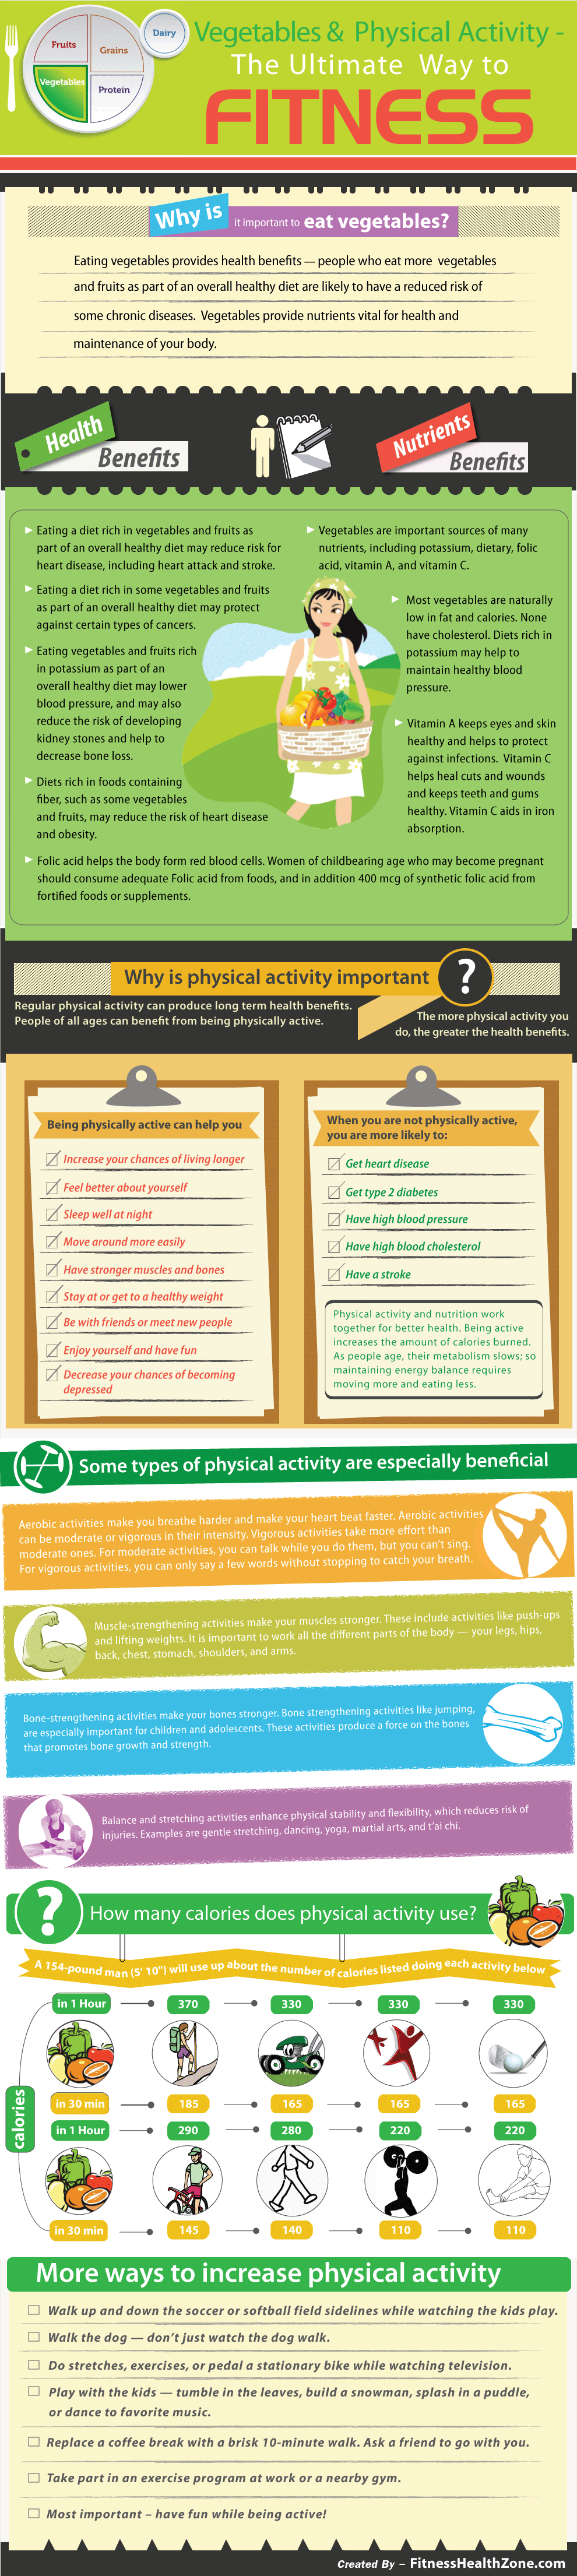 The ULTIMATE Road To Fitness (Vegetables+Physical Activity) - Infographic